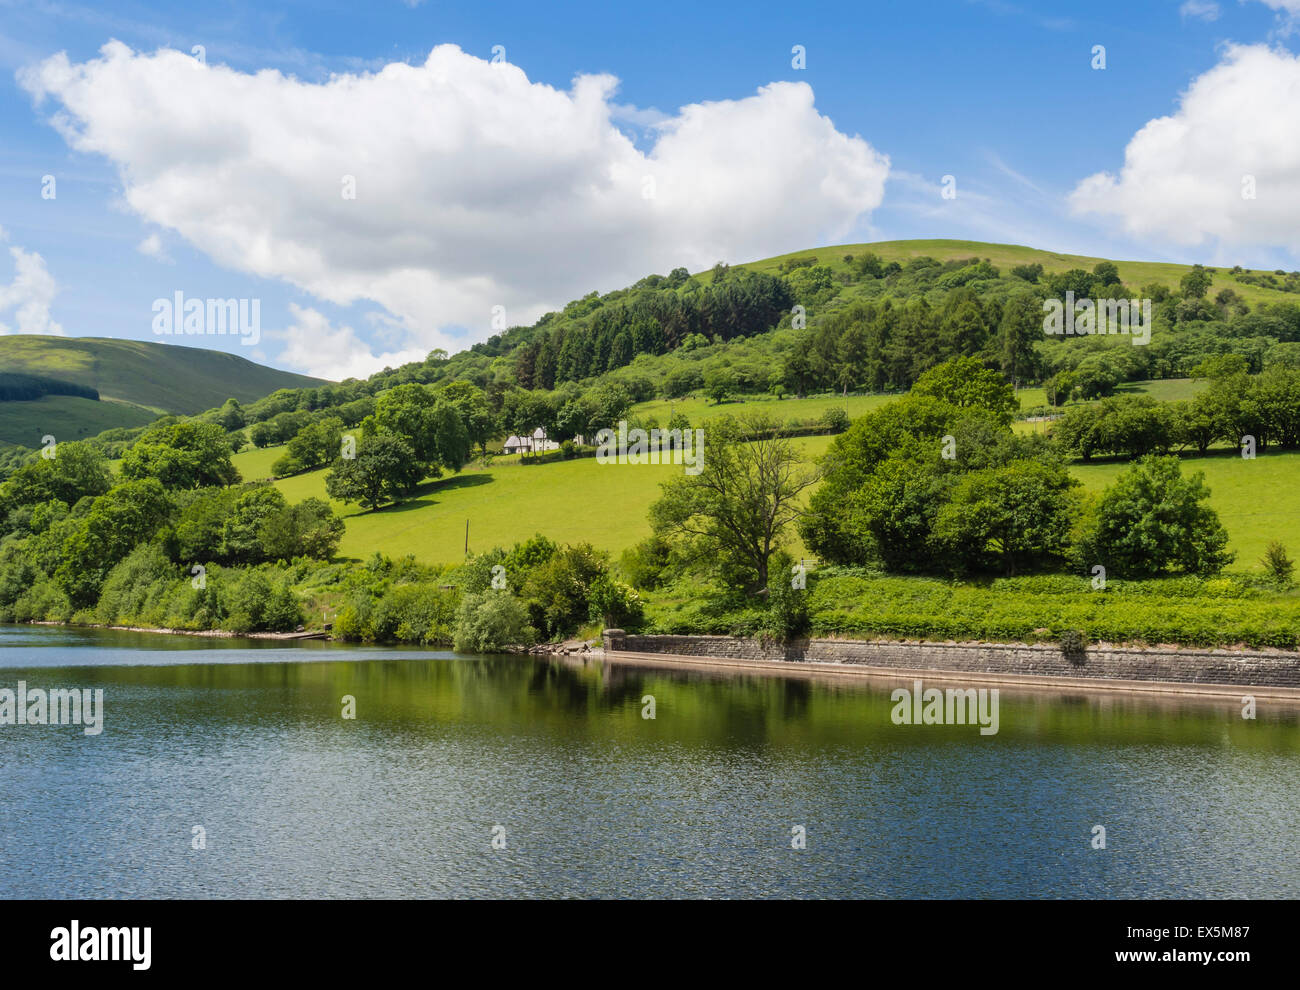 Talybont Reservoir, Brecon Beacons National Park, Powys, Wales, UK - Stock Image